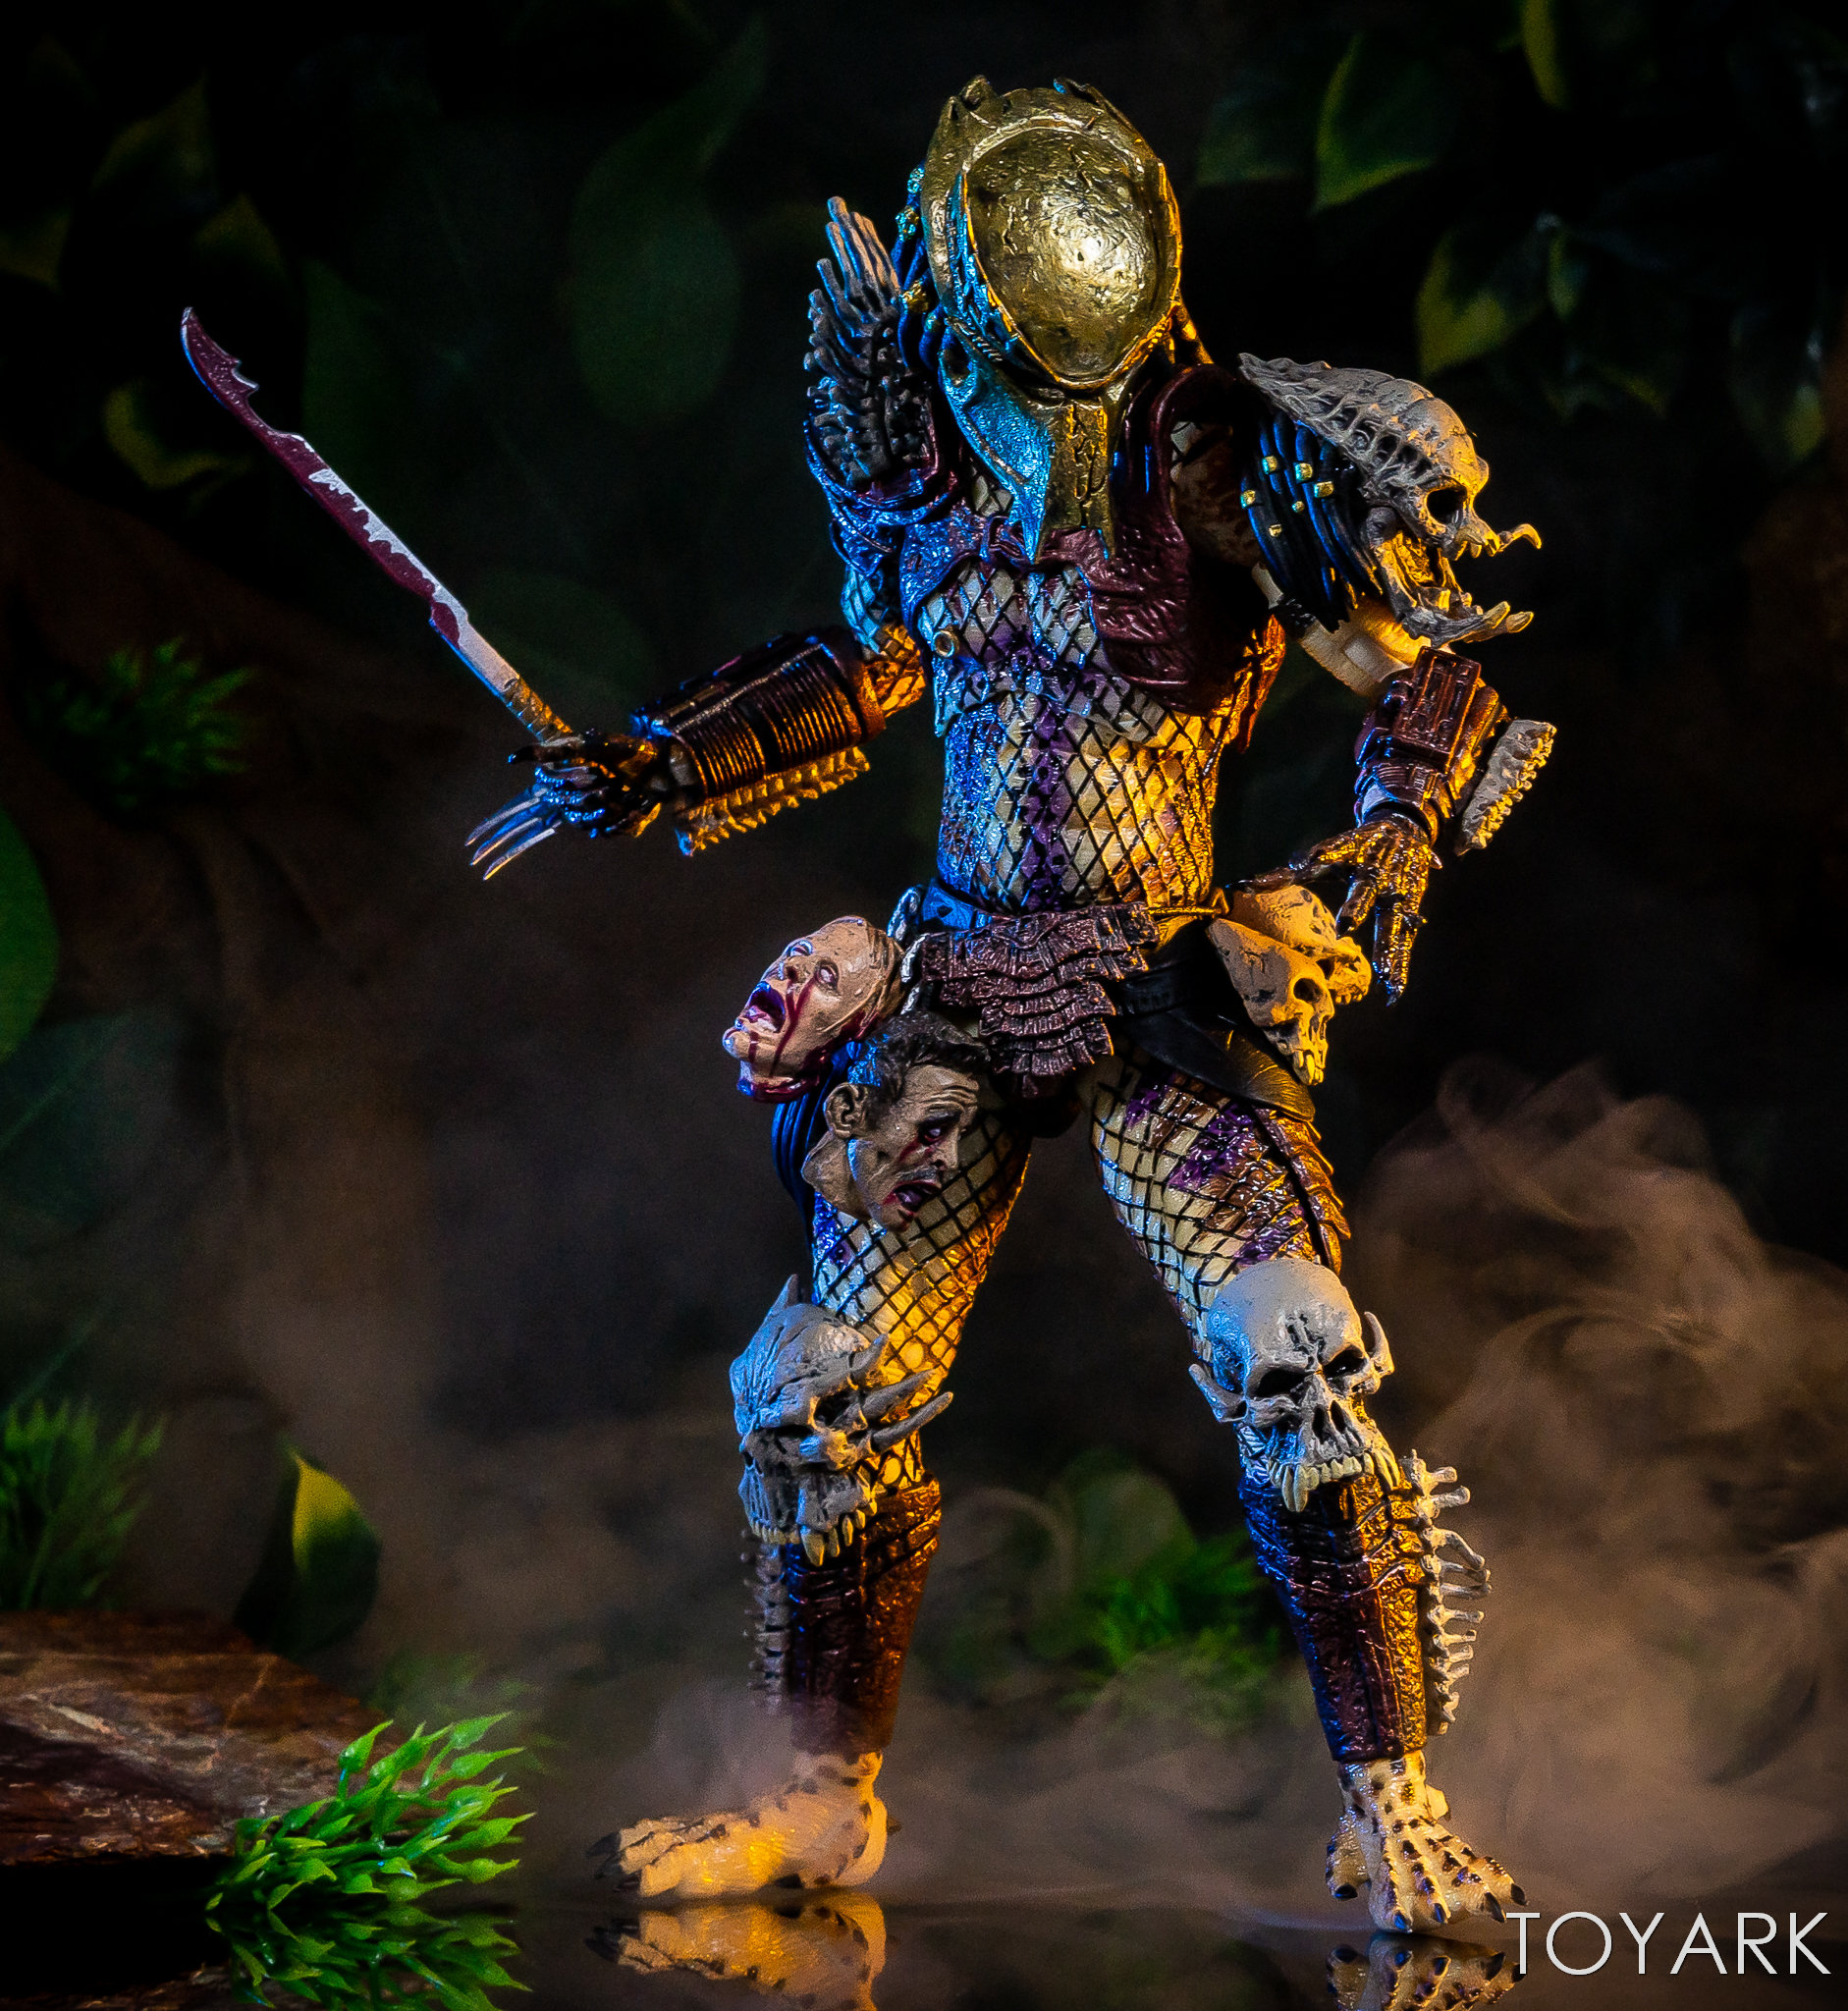 https://news.toyark.com/wp-content/uploads/sites/4/2019/01/NECA-Bad-Blood-vs-Enforcer-036.jpg